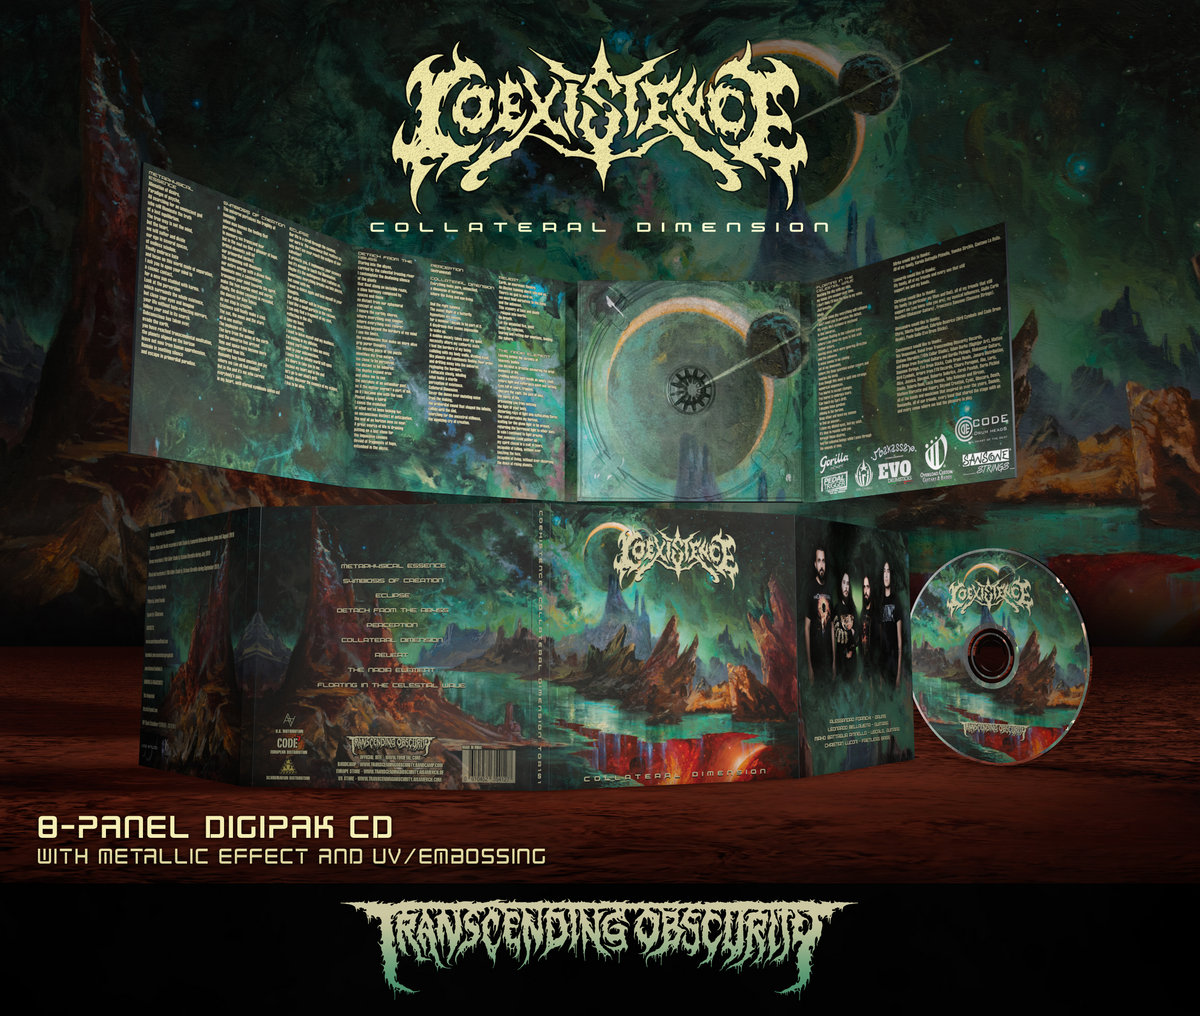 COEXISTENCE (Italy) - Collateral Dimension 8-Panel Digipak CD